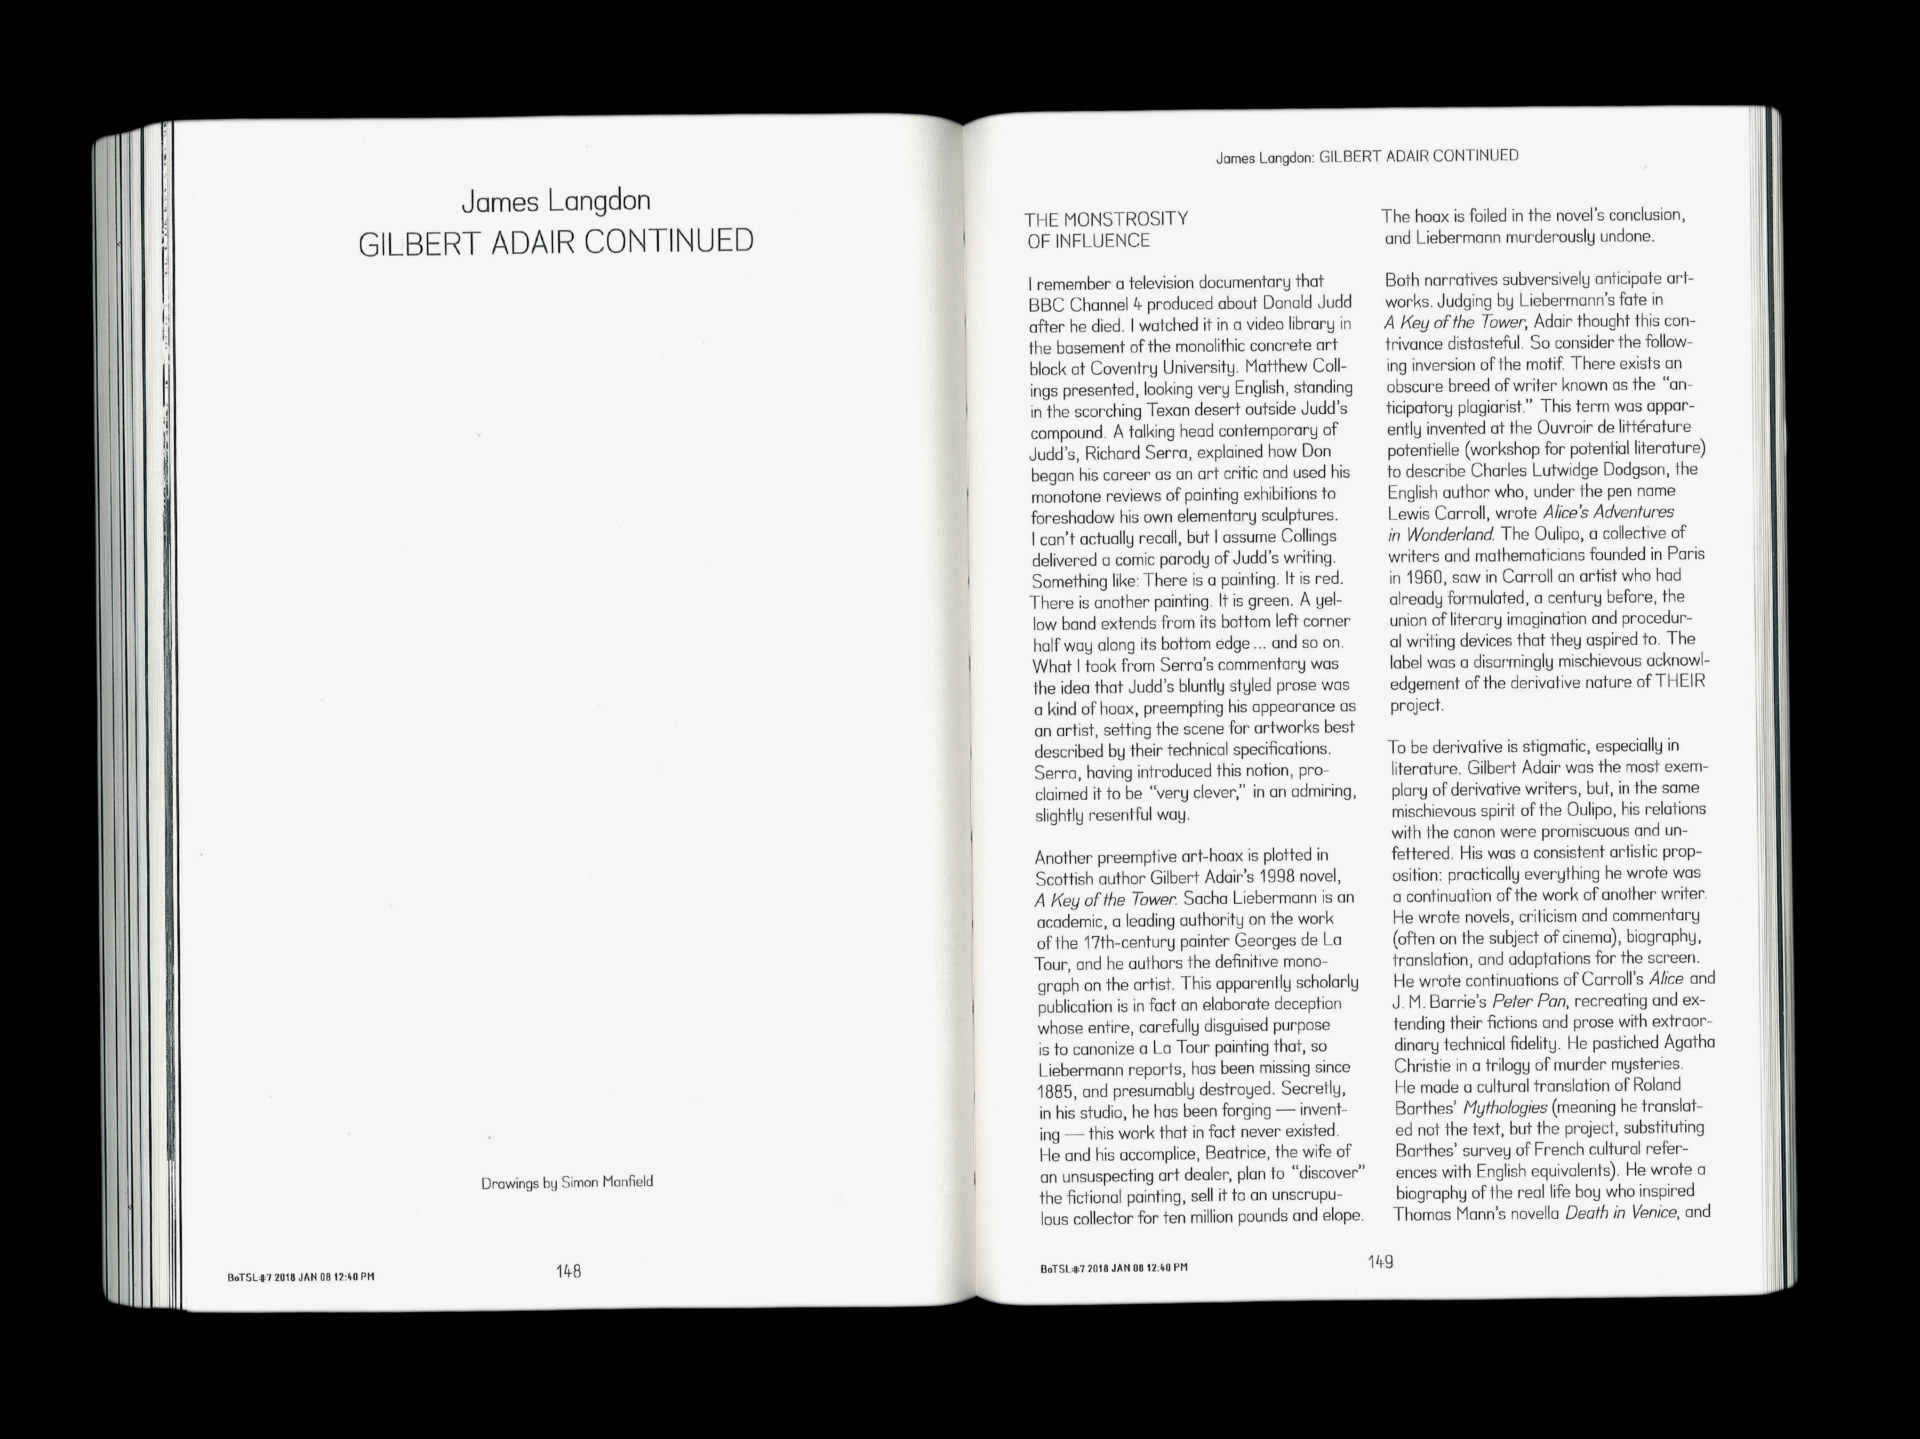 Klasse John Morgan Raum 106, Issue 1